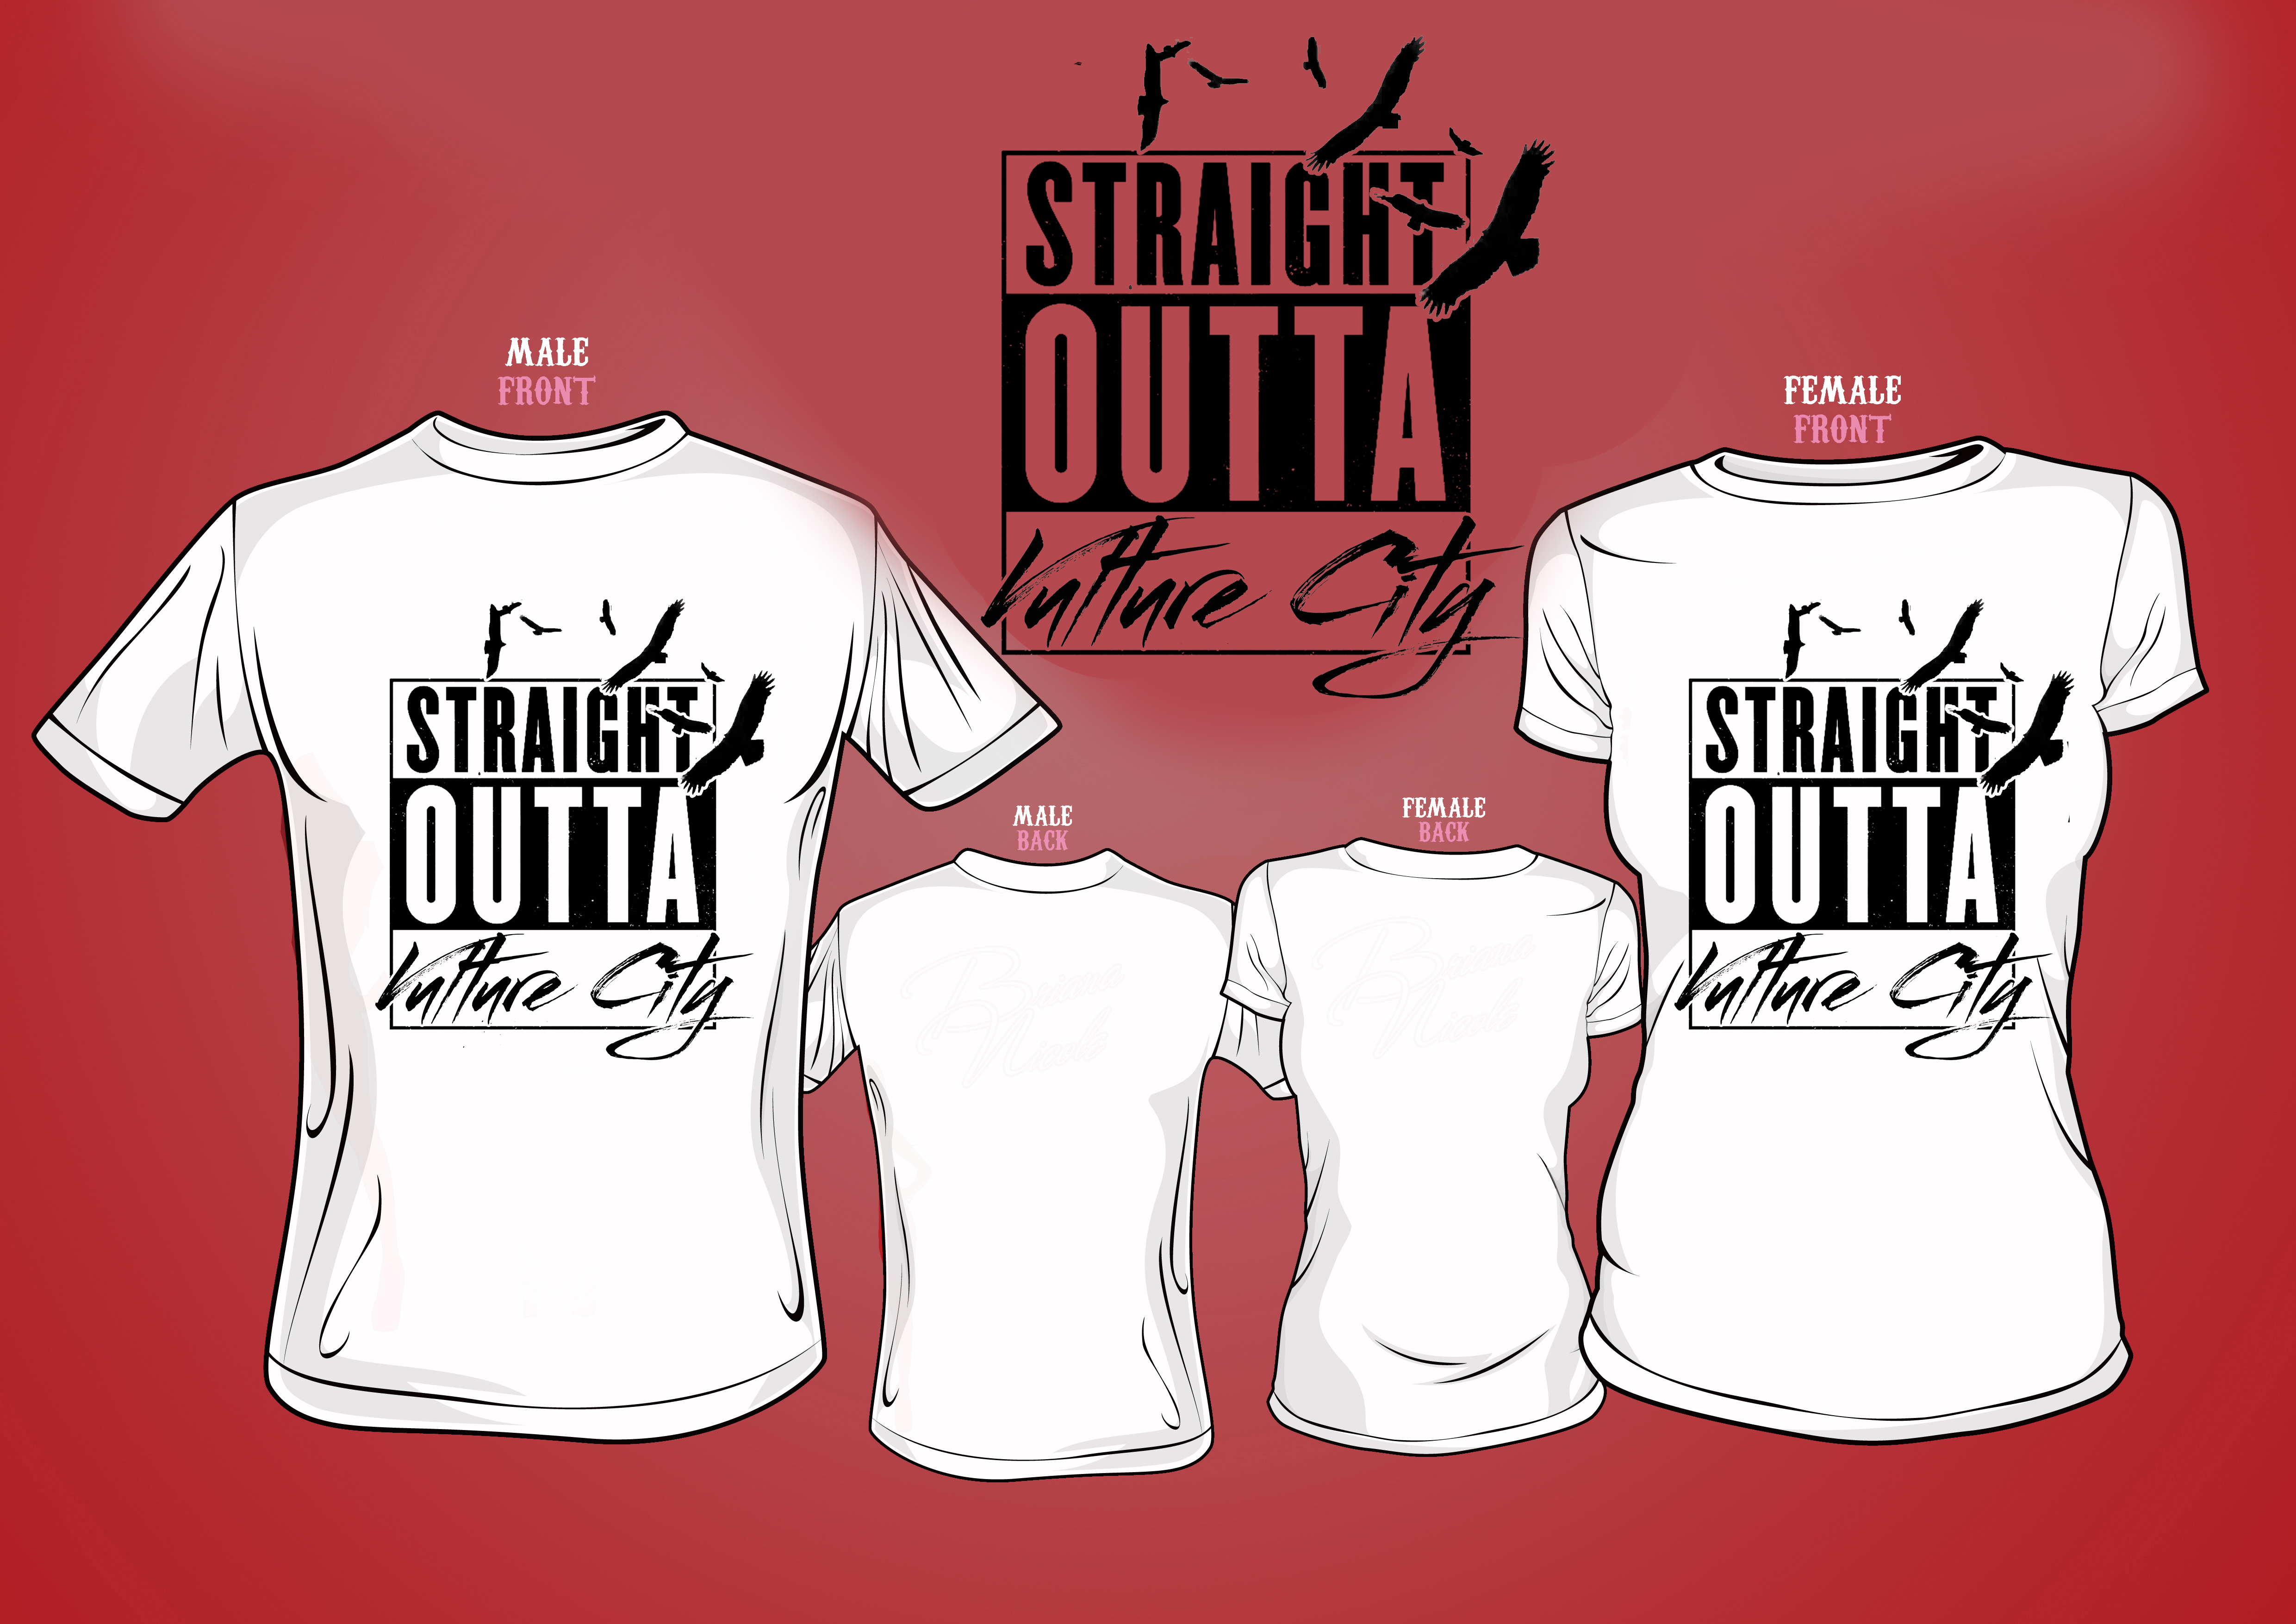 Straight Outta Vulture City Tshirt